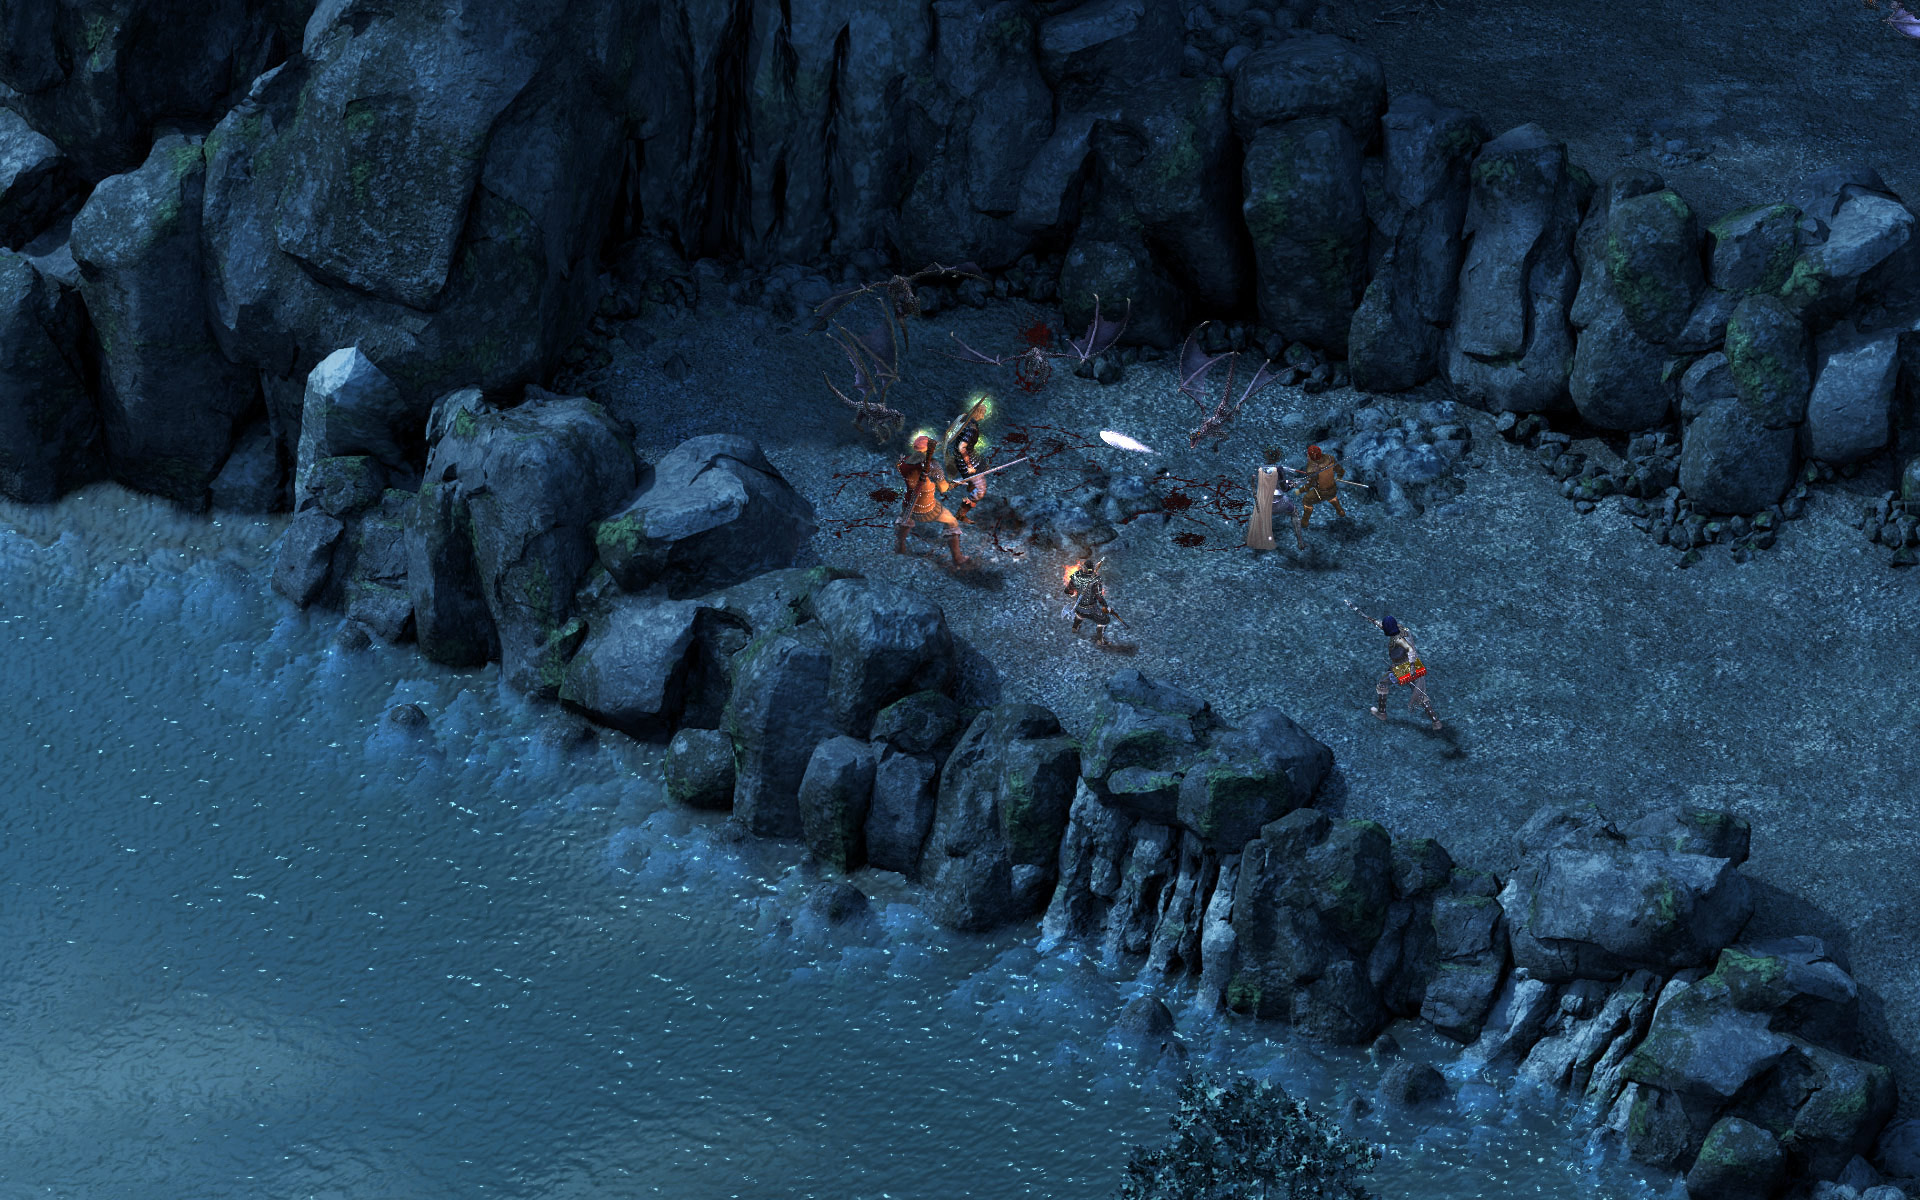 Pillars Of Eternity Wallpaper: Pillars Of Eternity – Don't Call It A Comeback